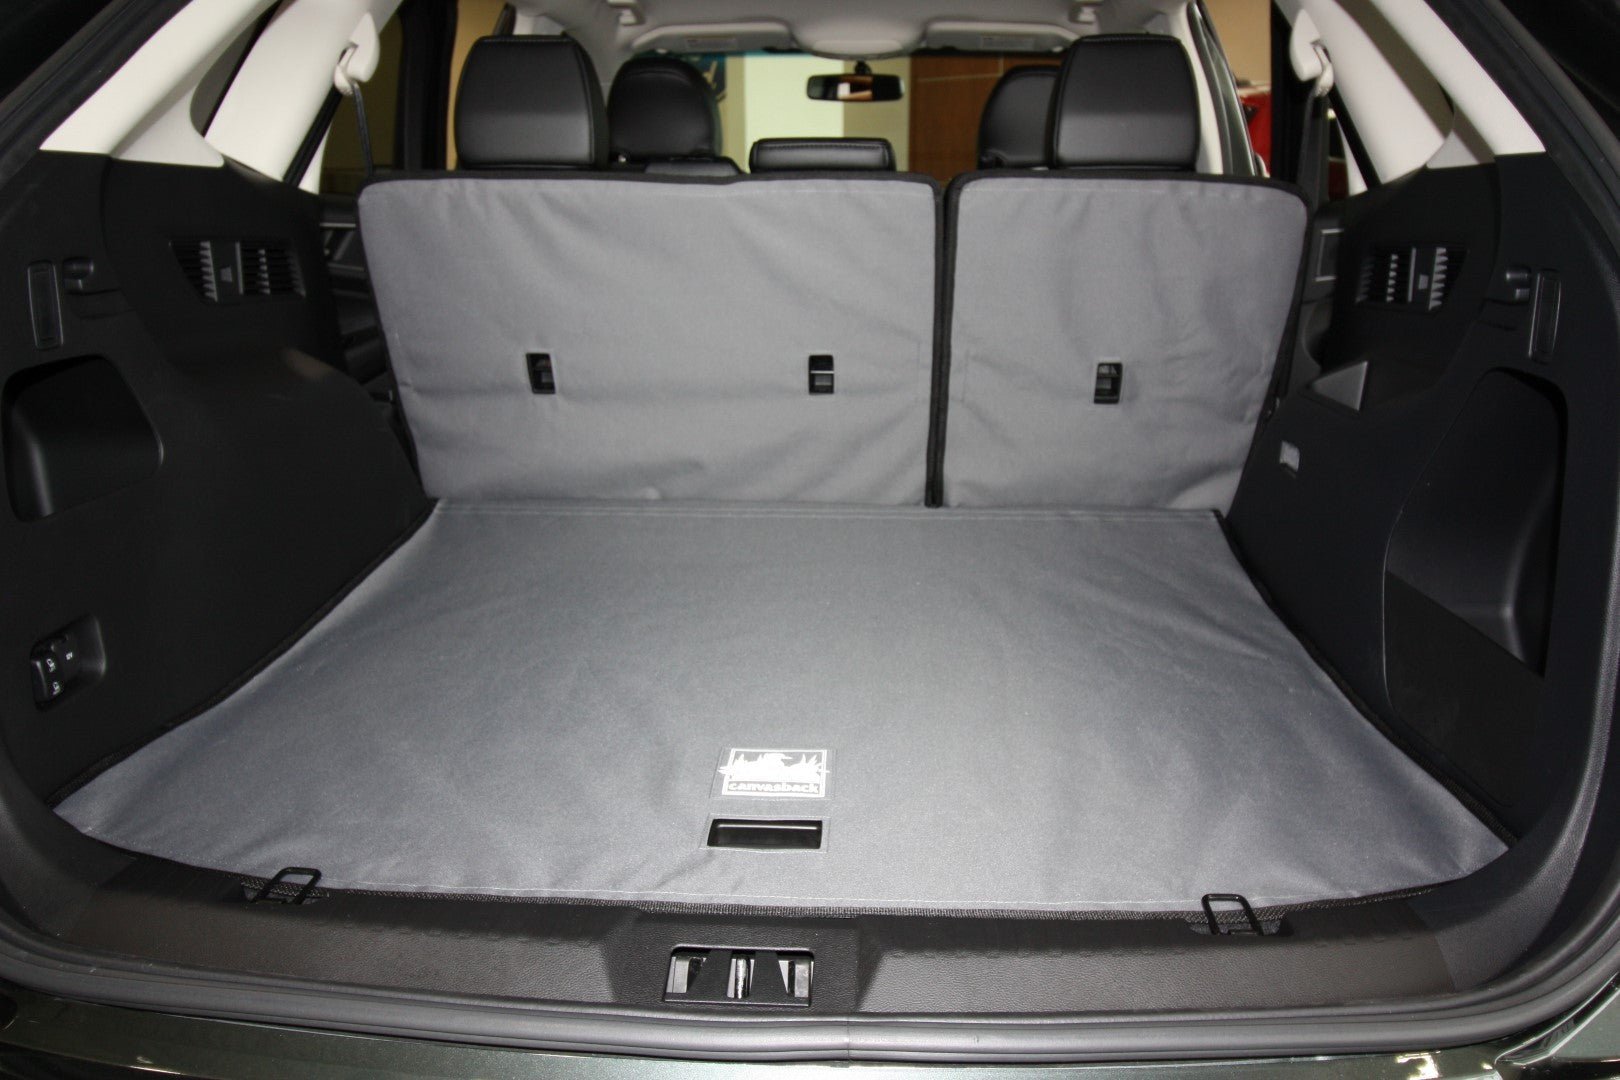 Ford Edge Canvasback Cargo Liner  2015-2021 FREE SHIPPING